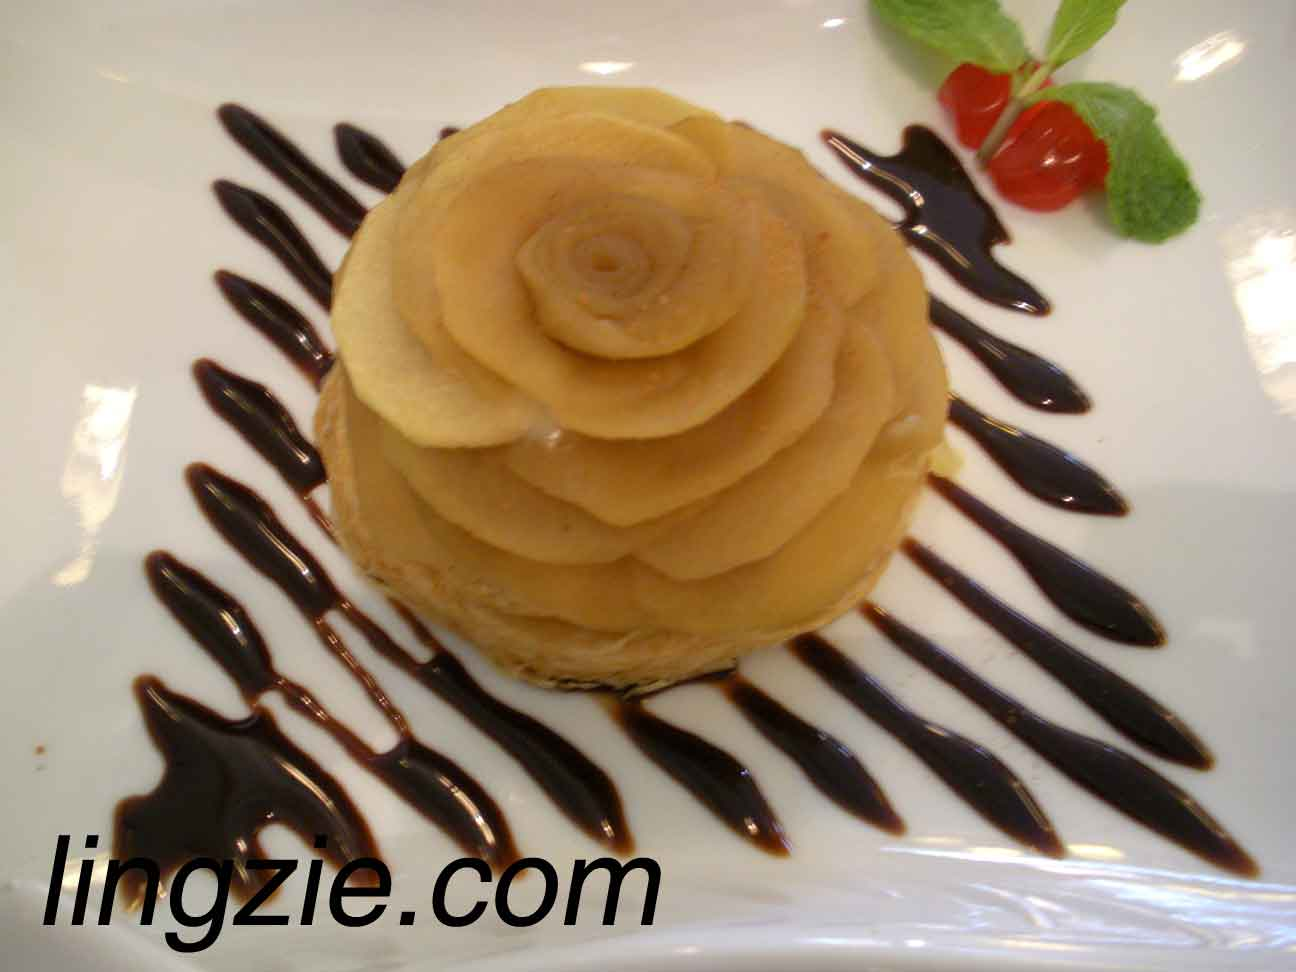 Vietnamese Apple Pie